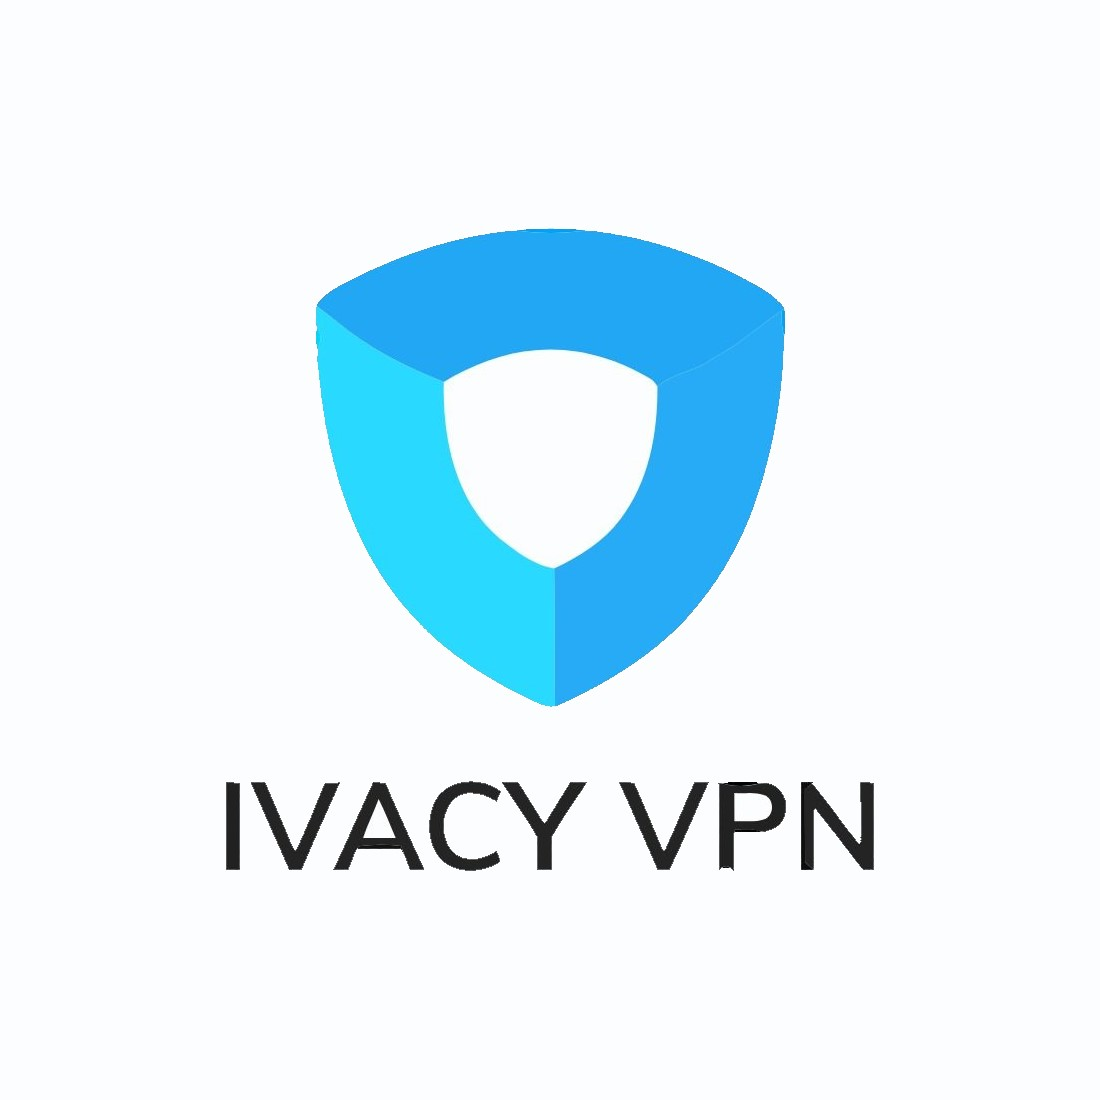 11.11 Ivacy VPN Sale 1 YEAR Plan in Just 65% Off!